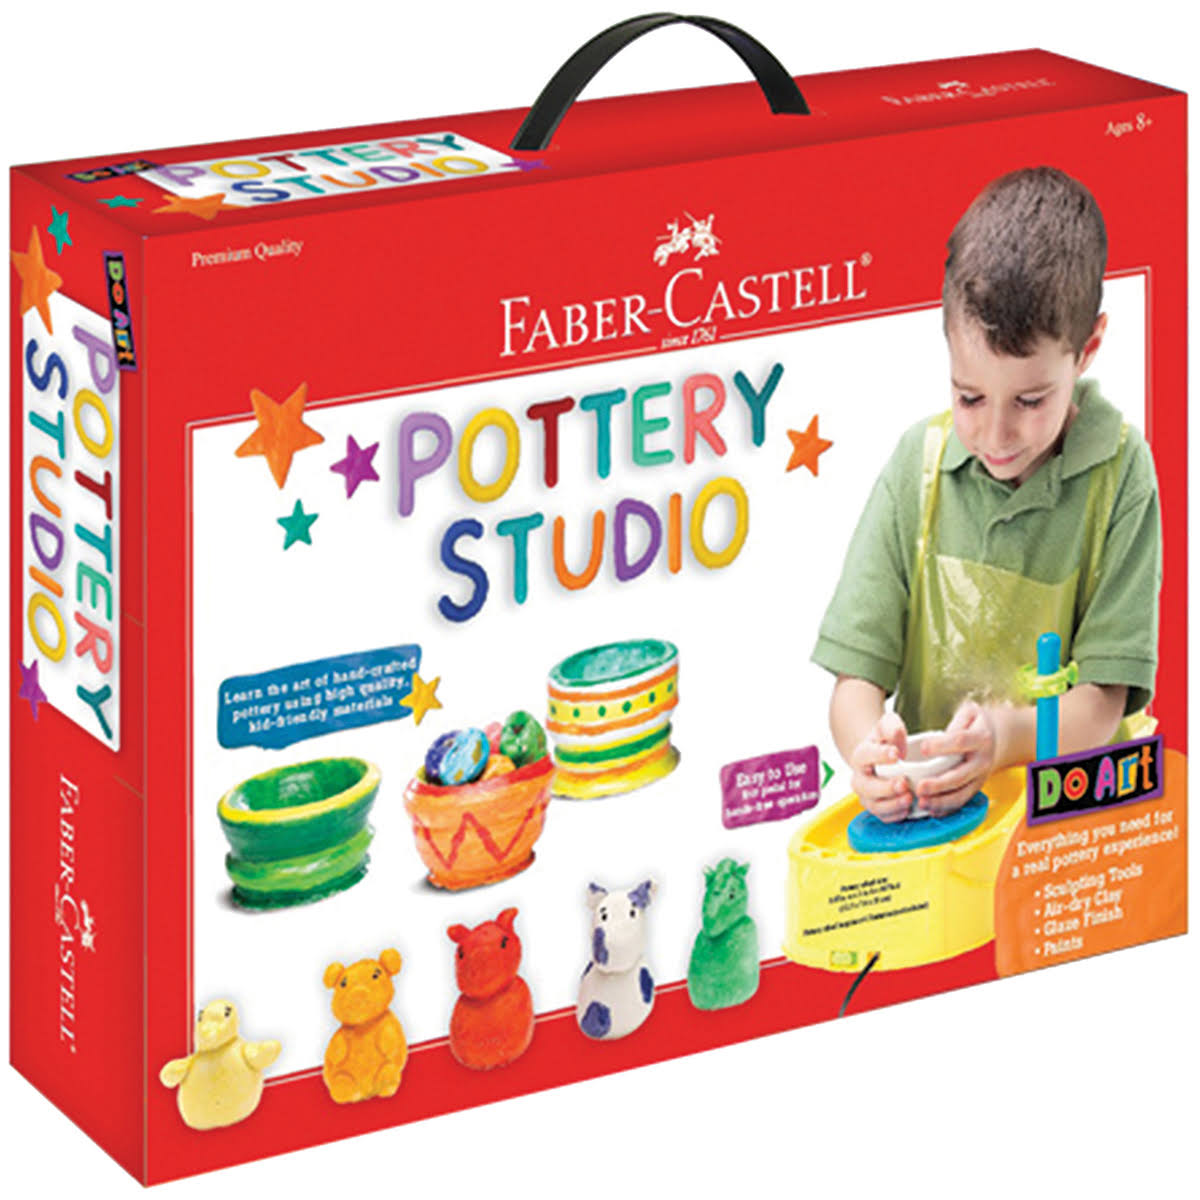 Faber-Castell Do Art Pottery Studio Kit